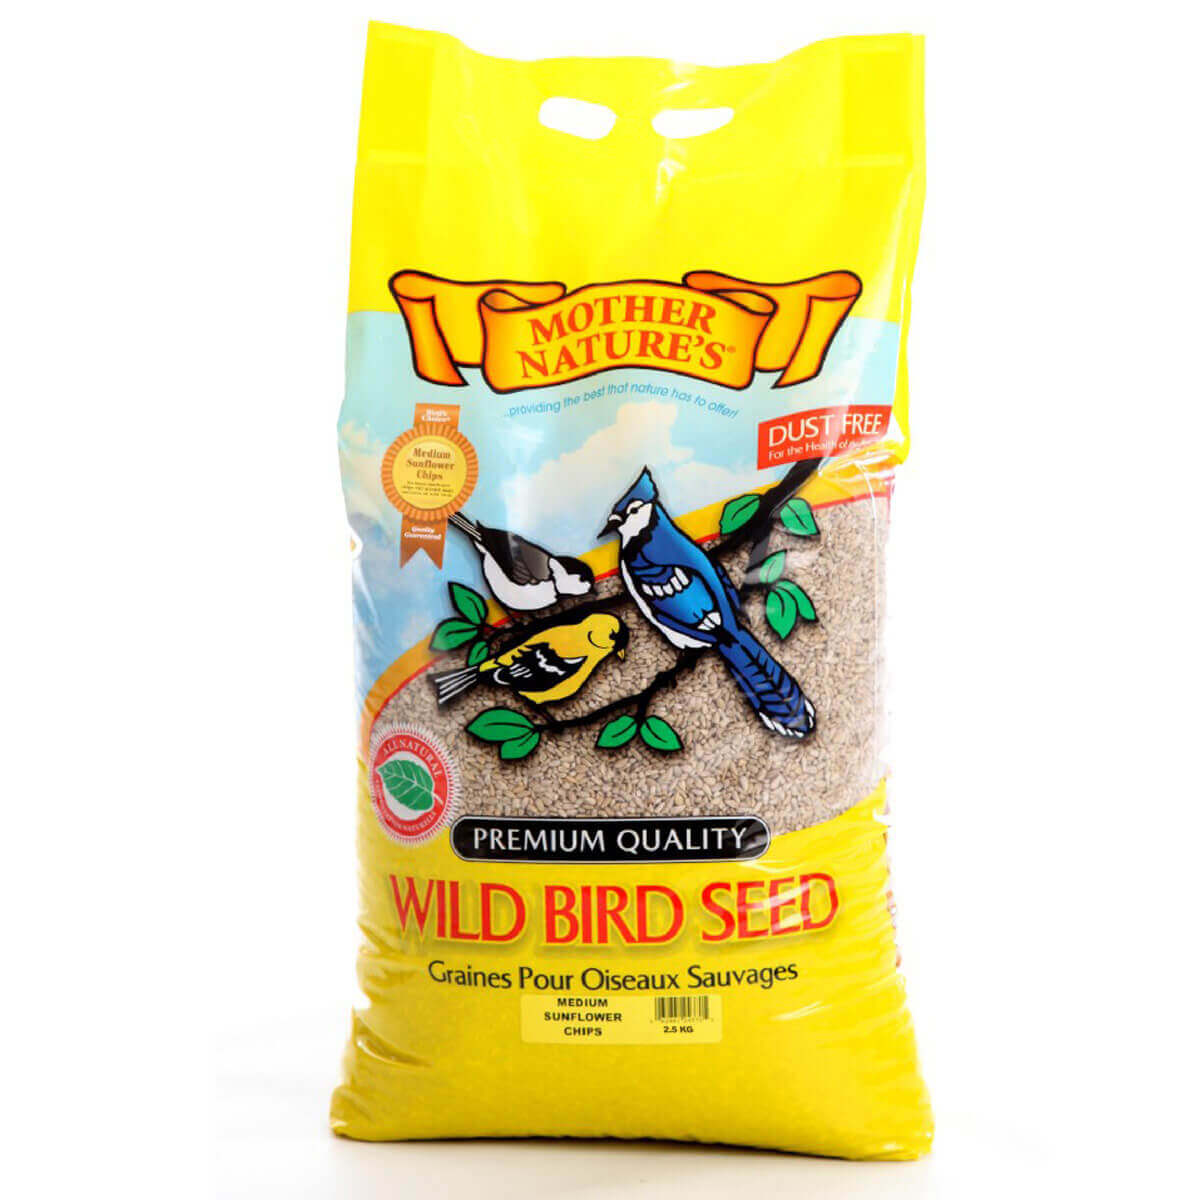 Mother Nature's Sunflower Chips - 2.5 kg